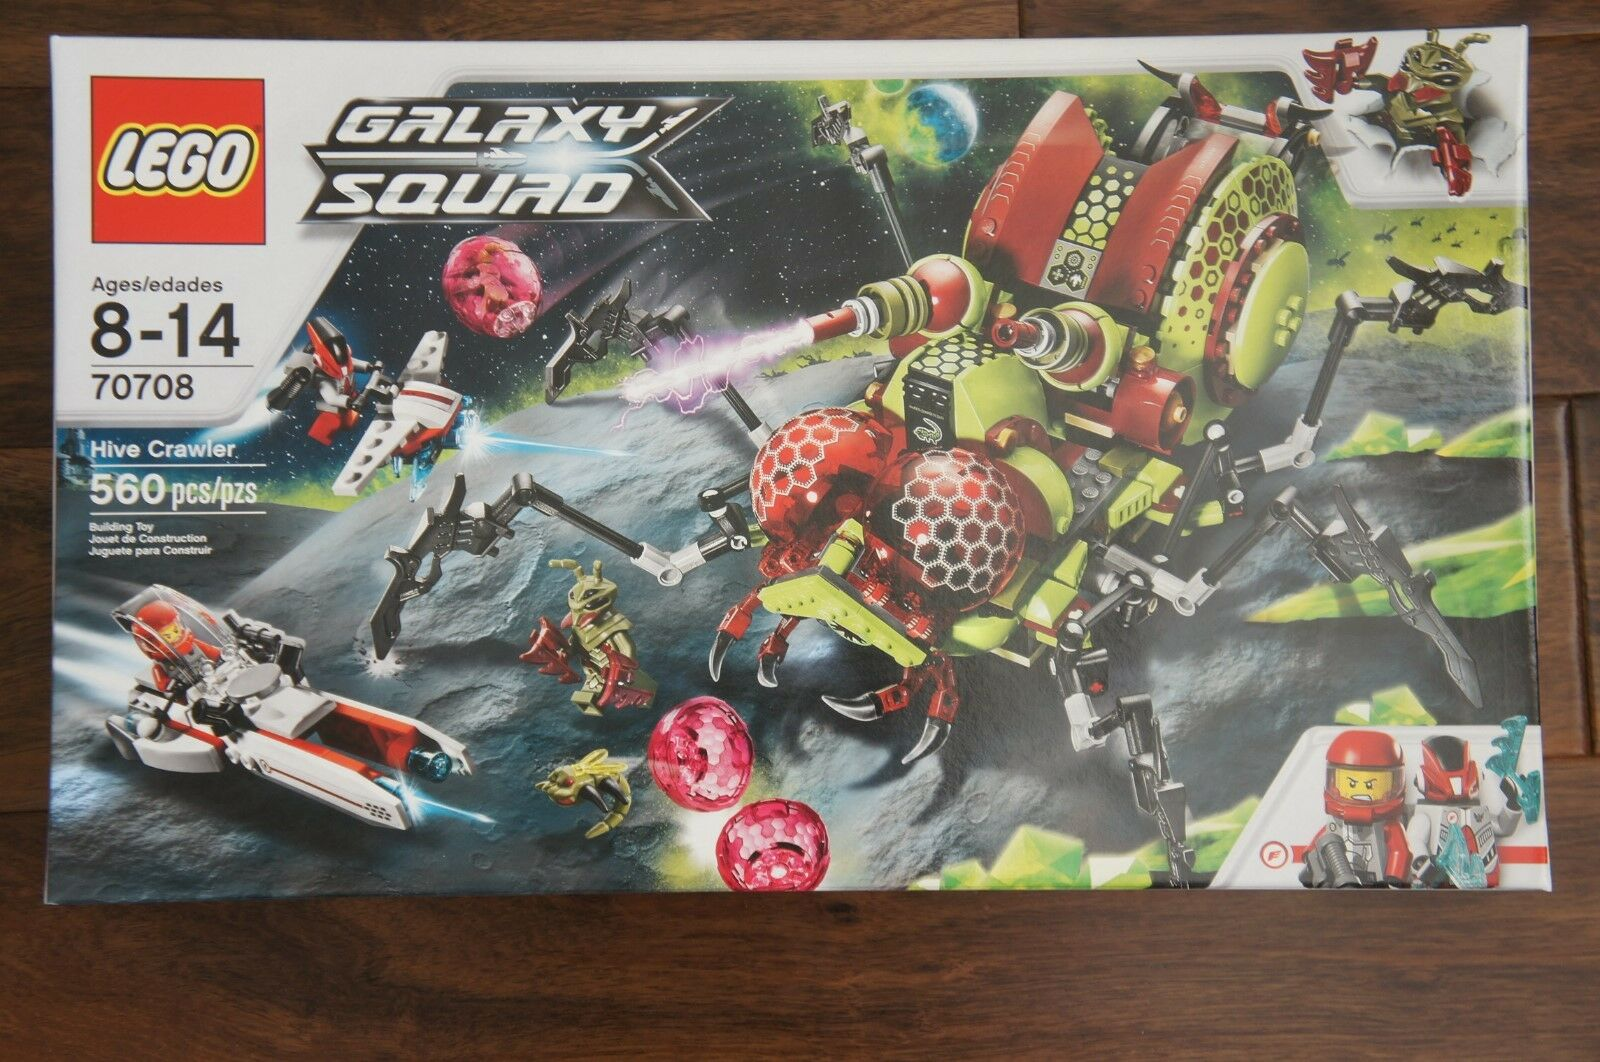 NEW NEW NEW LEGO Galaxy Squad Hive Crawler pcs RETIRED fc14e5